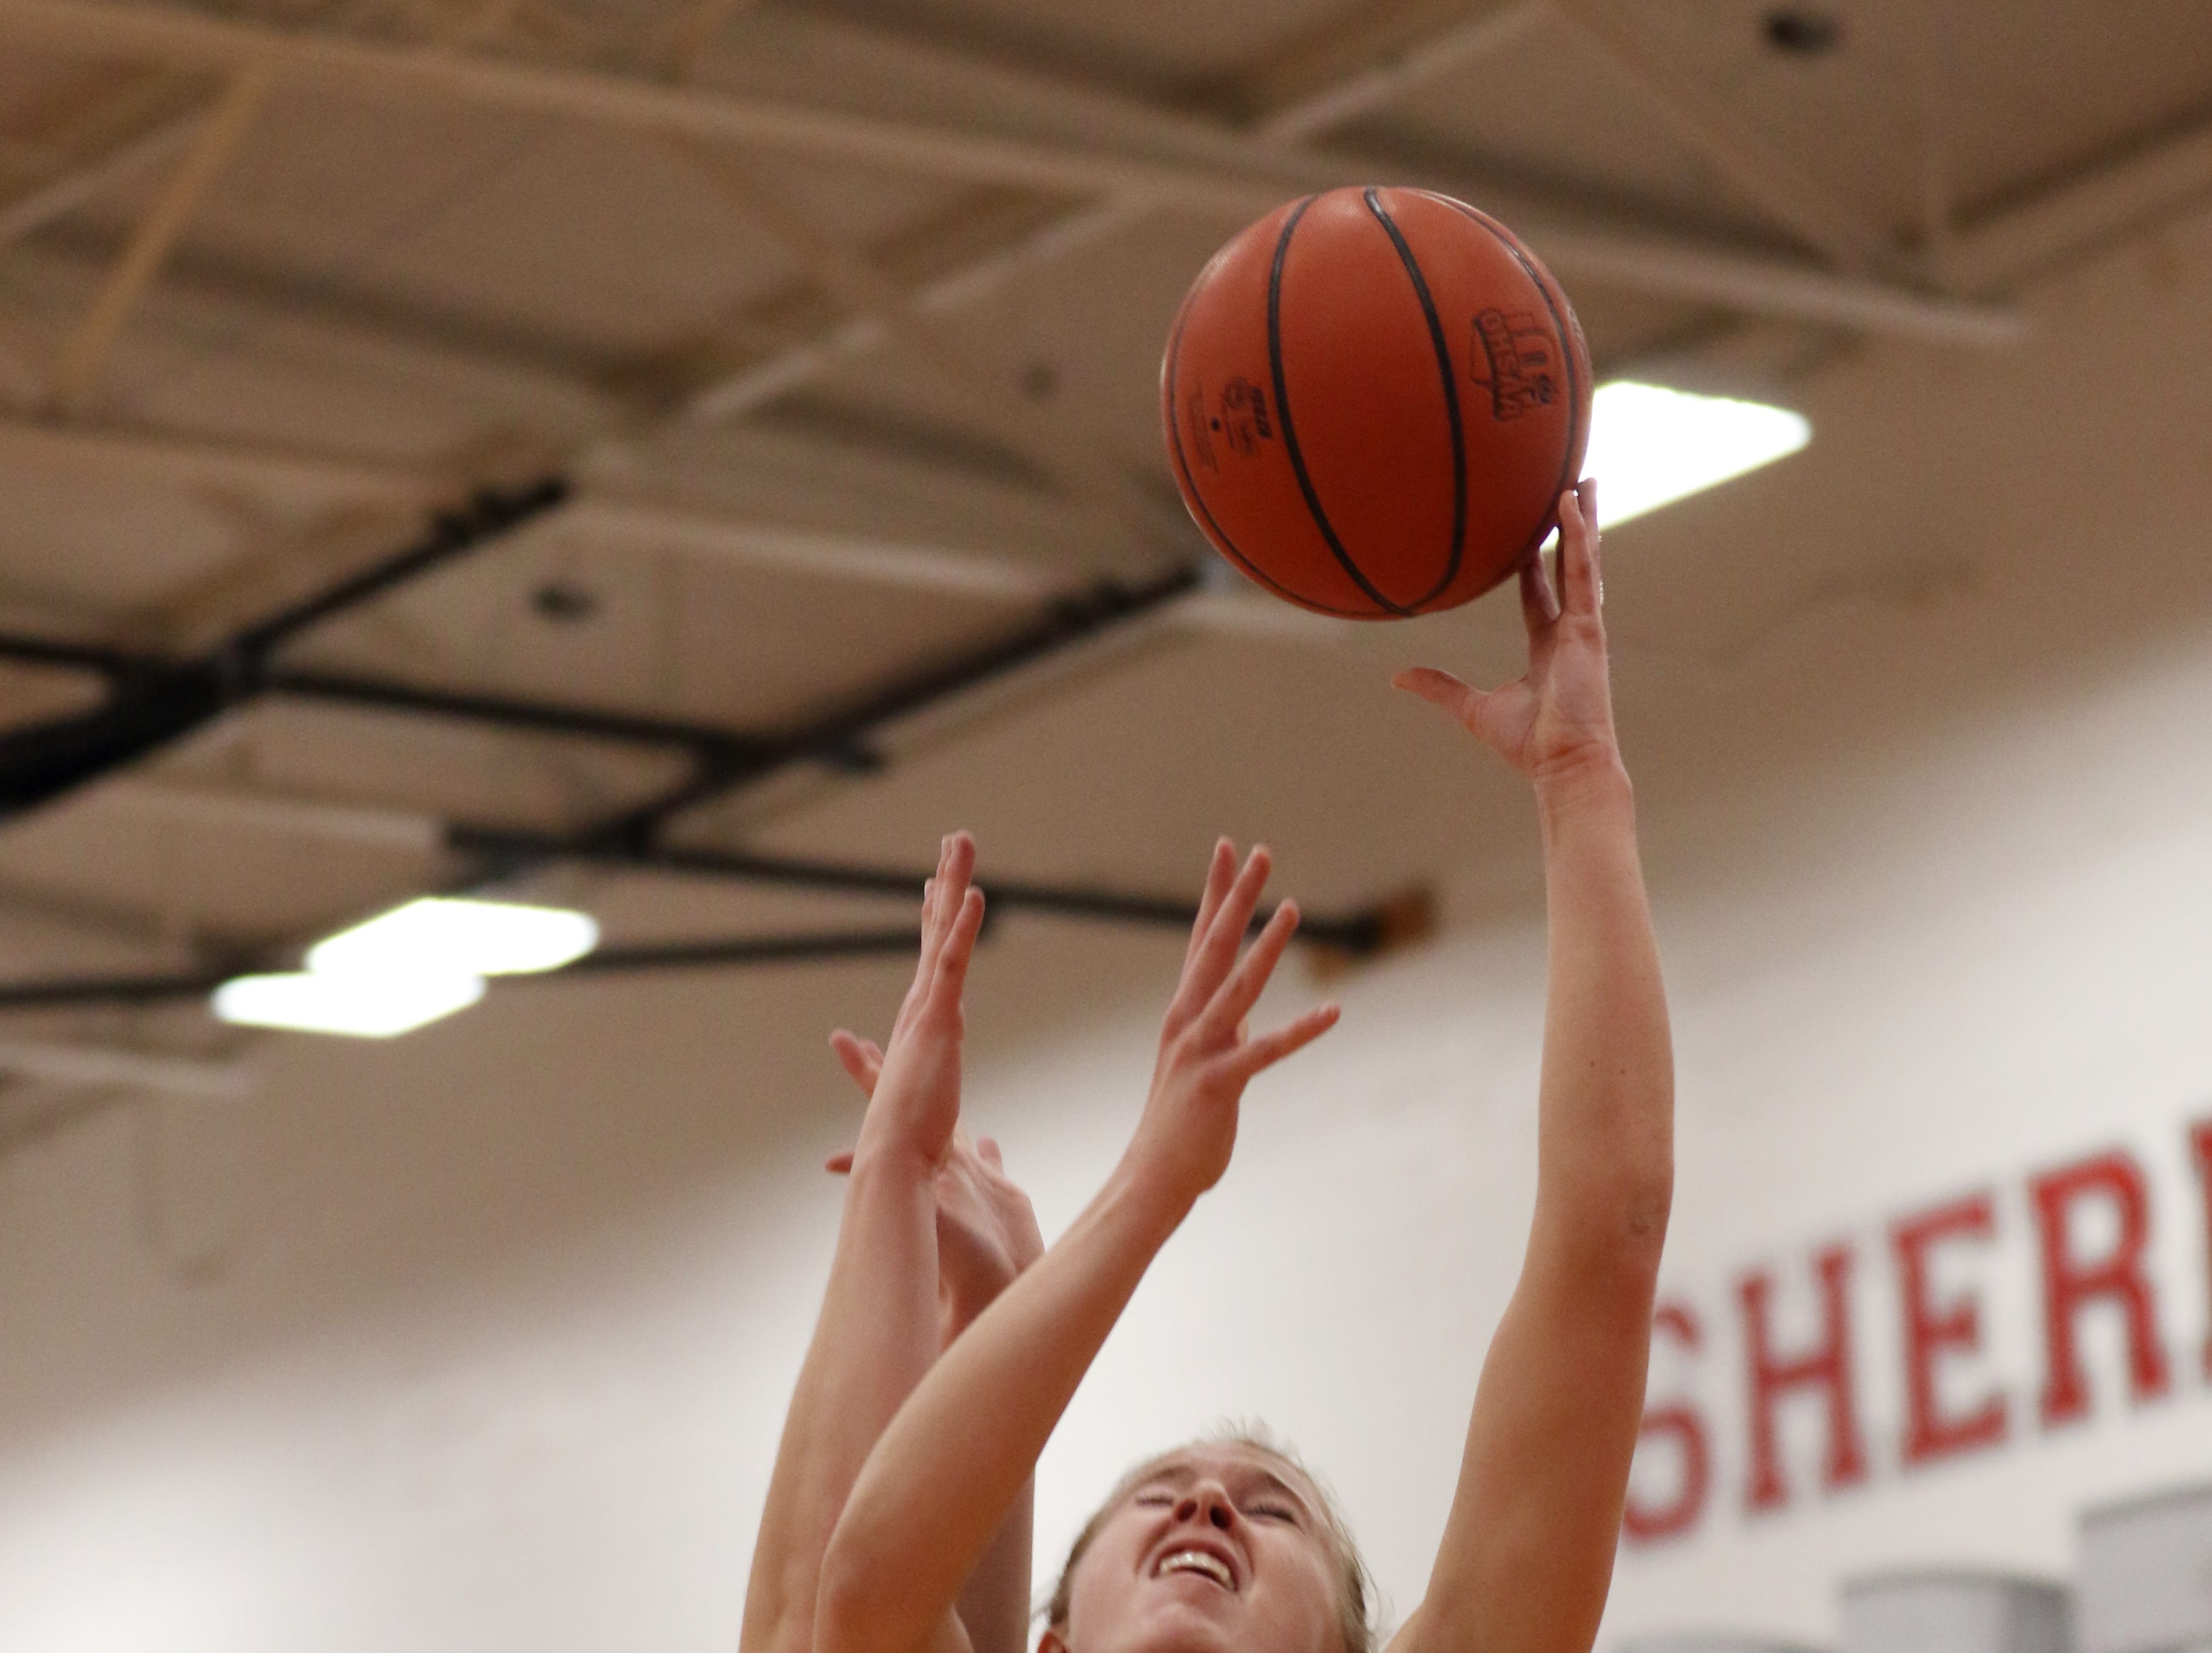 Sheridan beat visiting Tri-Valley to clinch Muskingum Valley League title Wednesday night.